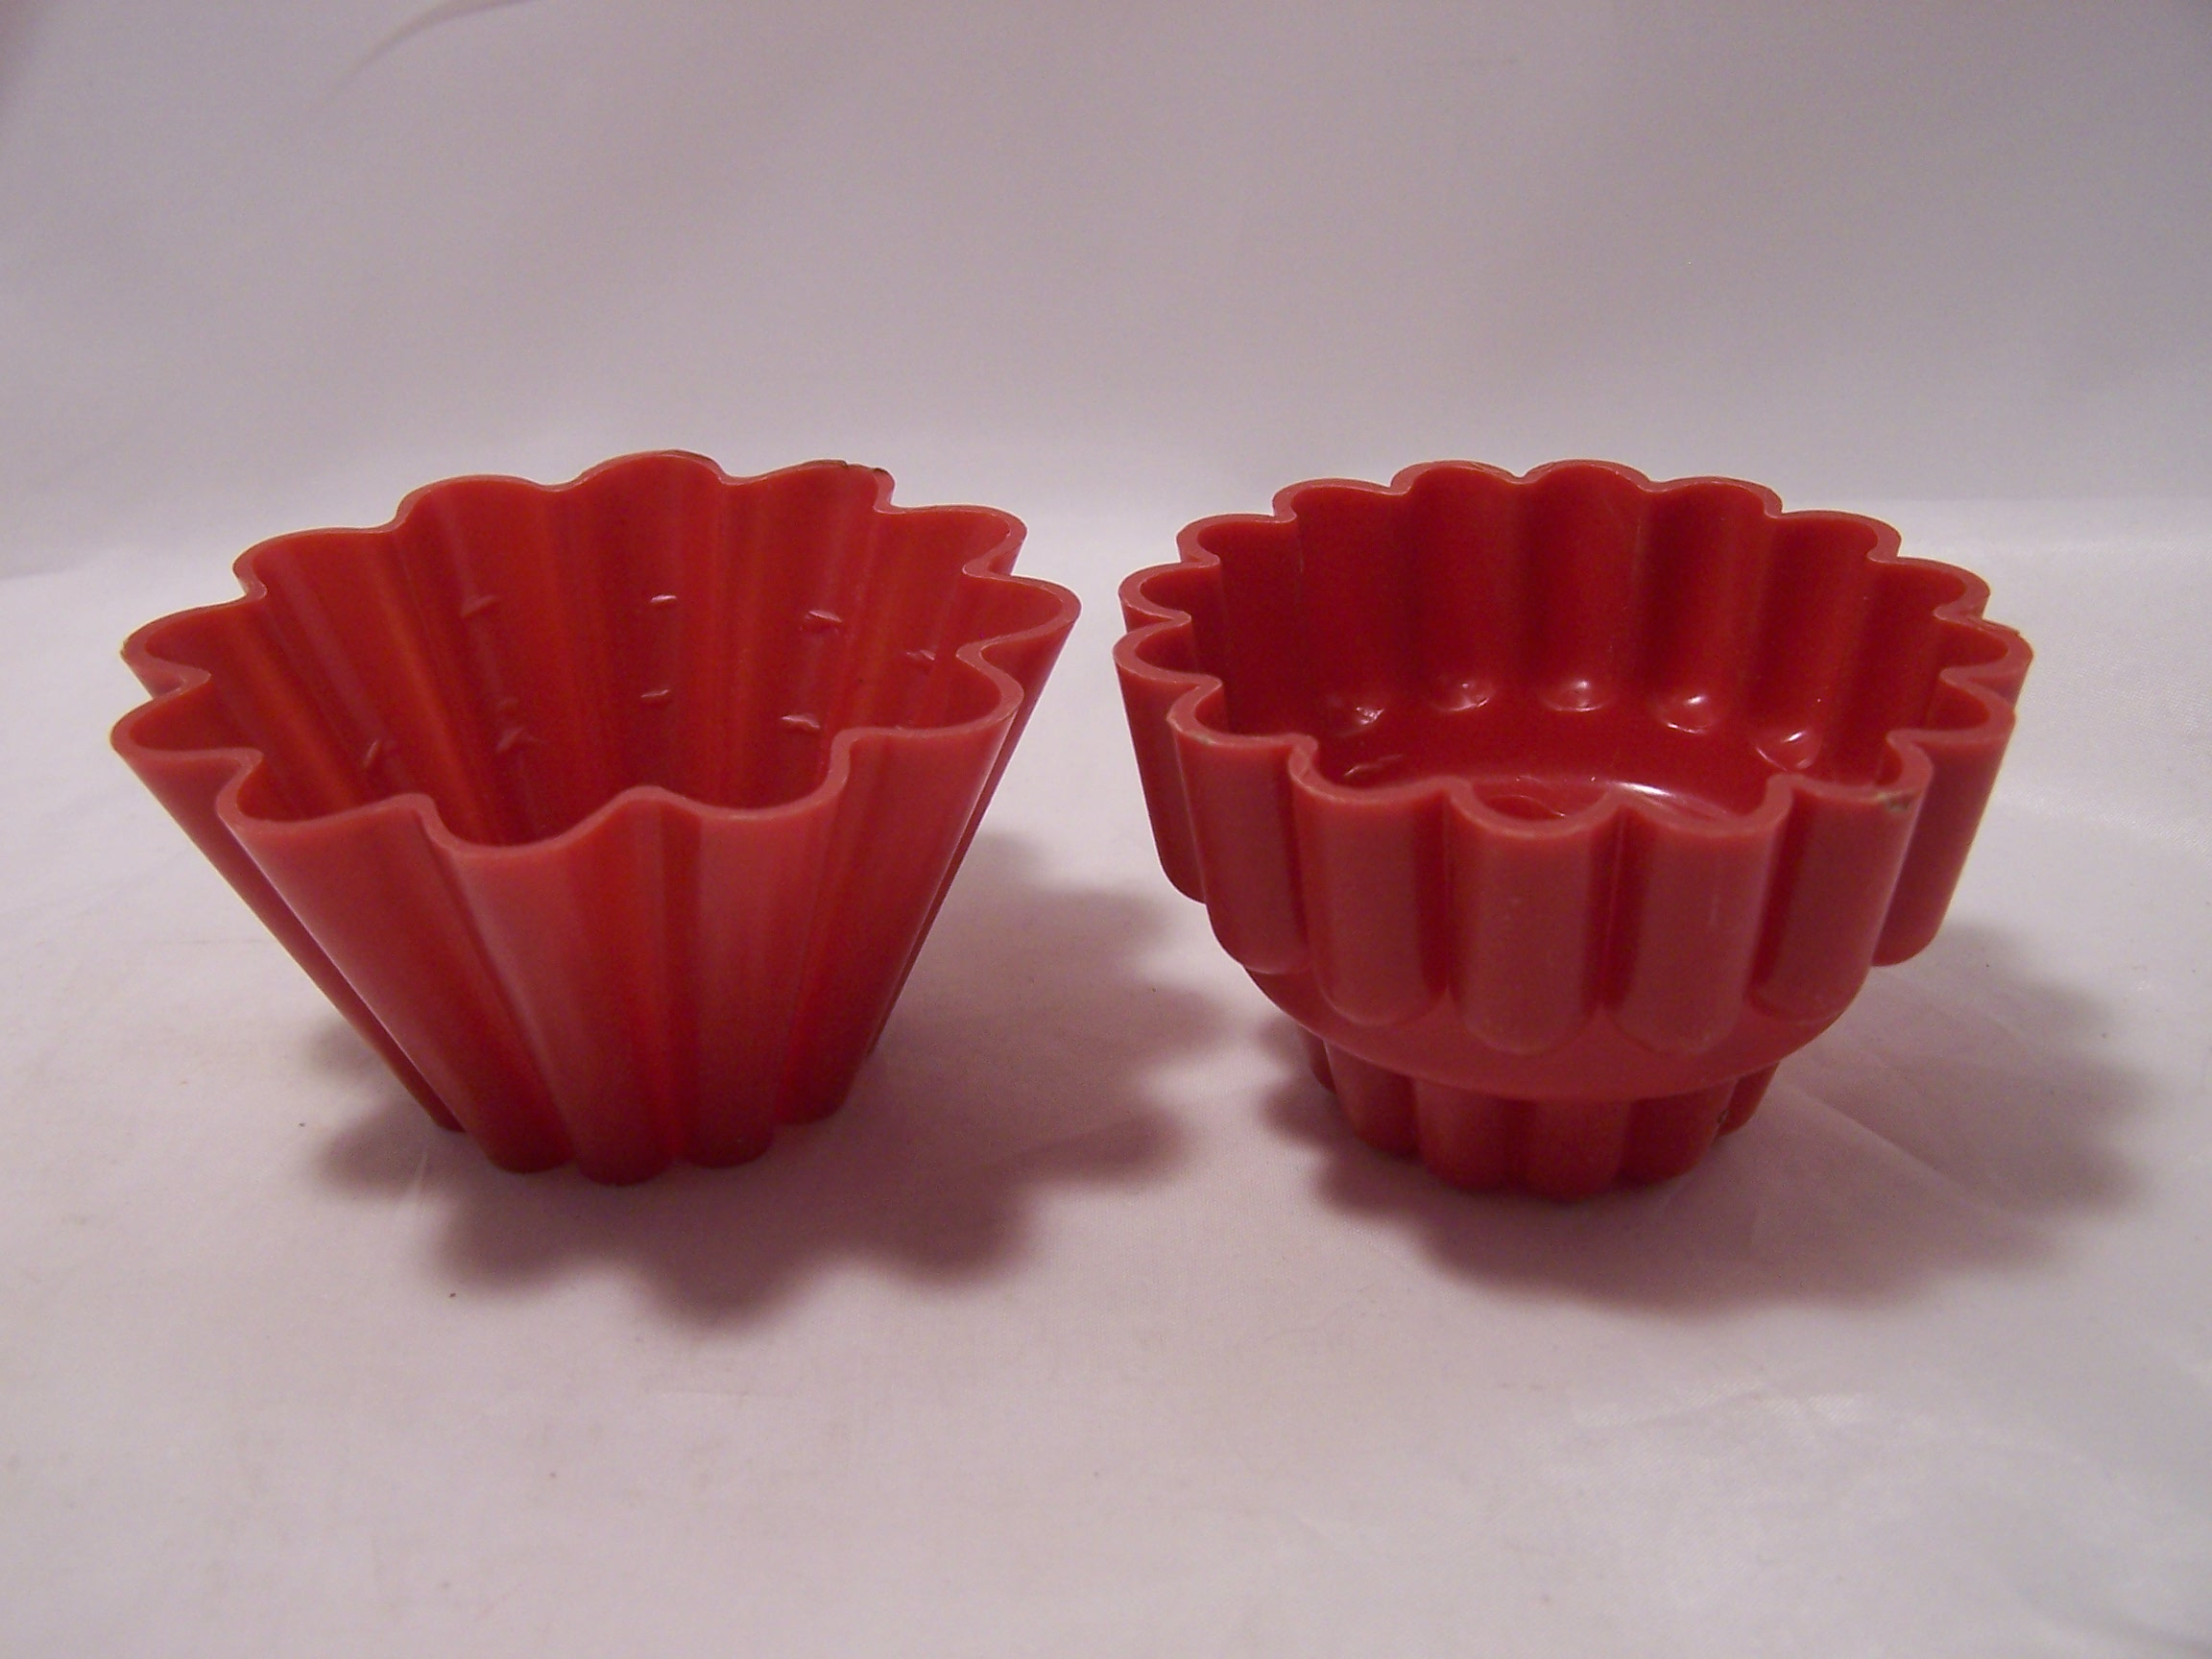 Image 1 of Toy Jello Molds, Childs Cookware, Plastic